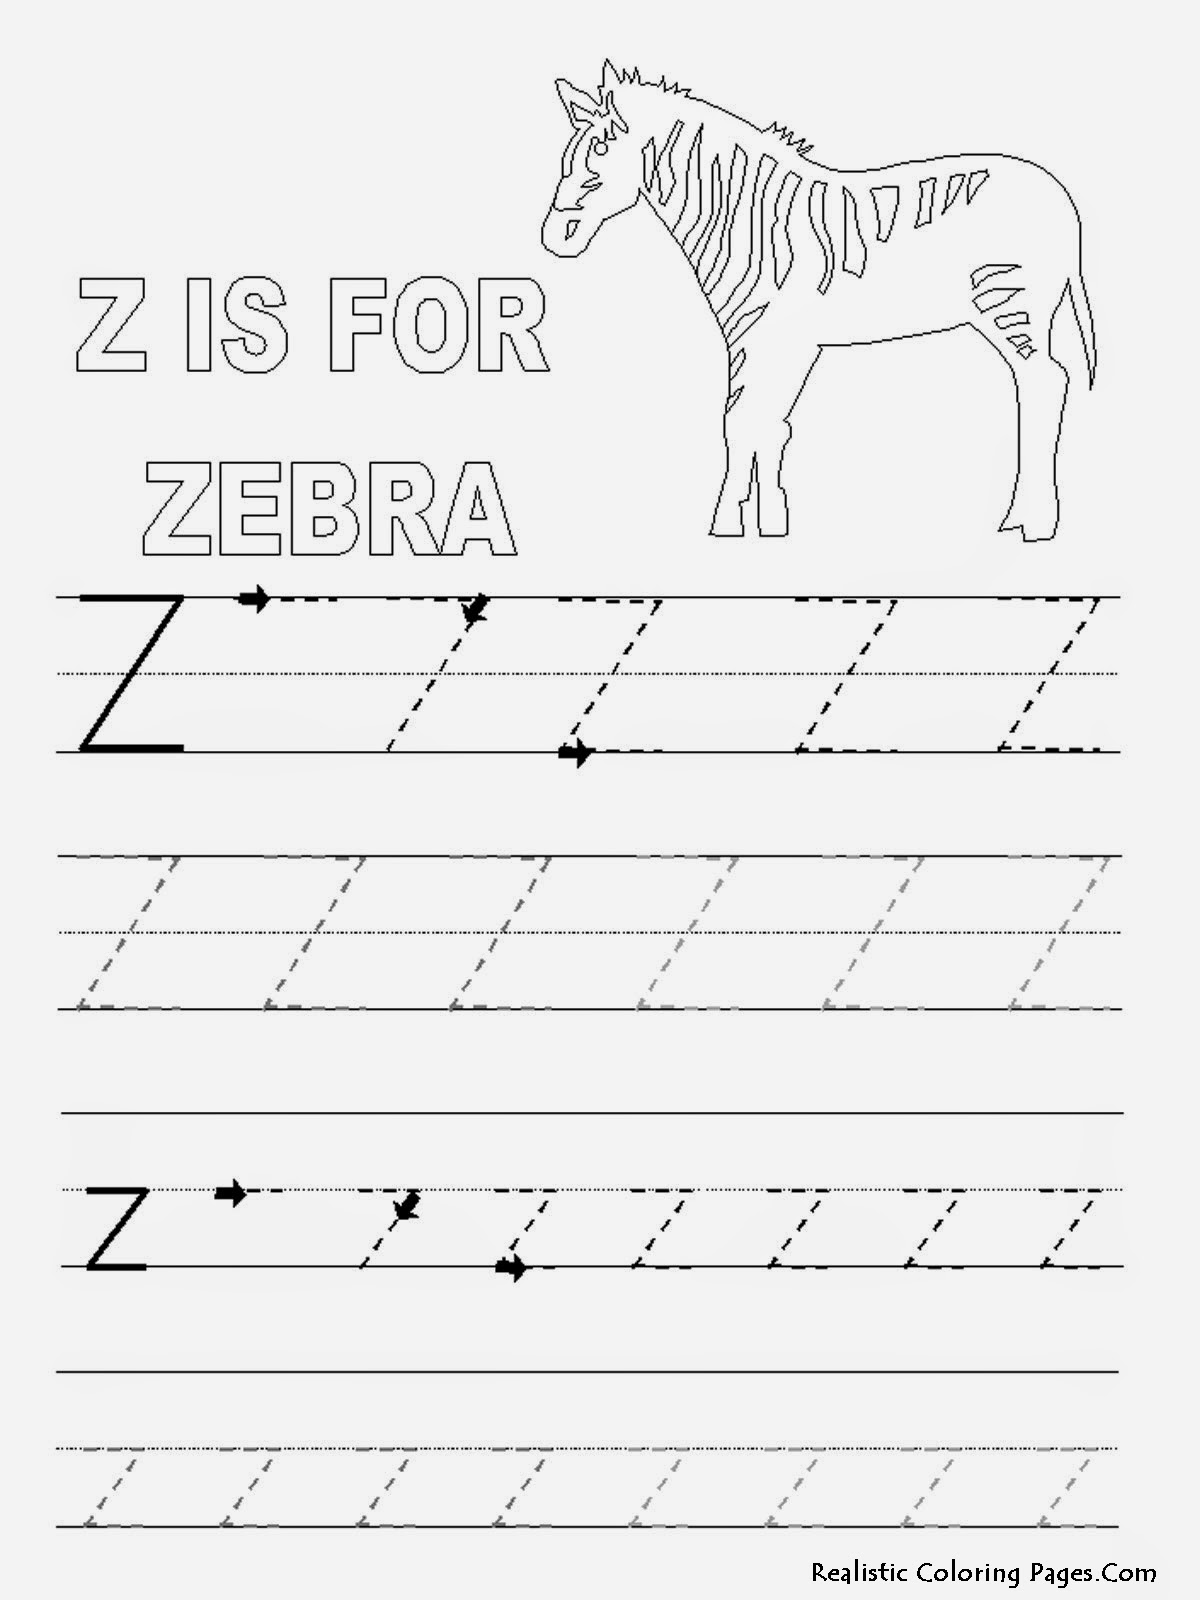 Z Letters Alphabet Traces N 14th Alphabet Coloring Pages For Kids To Color And Print